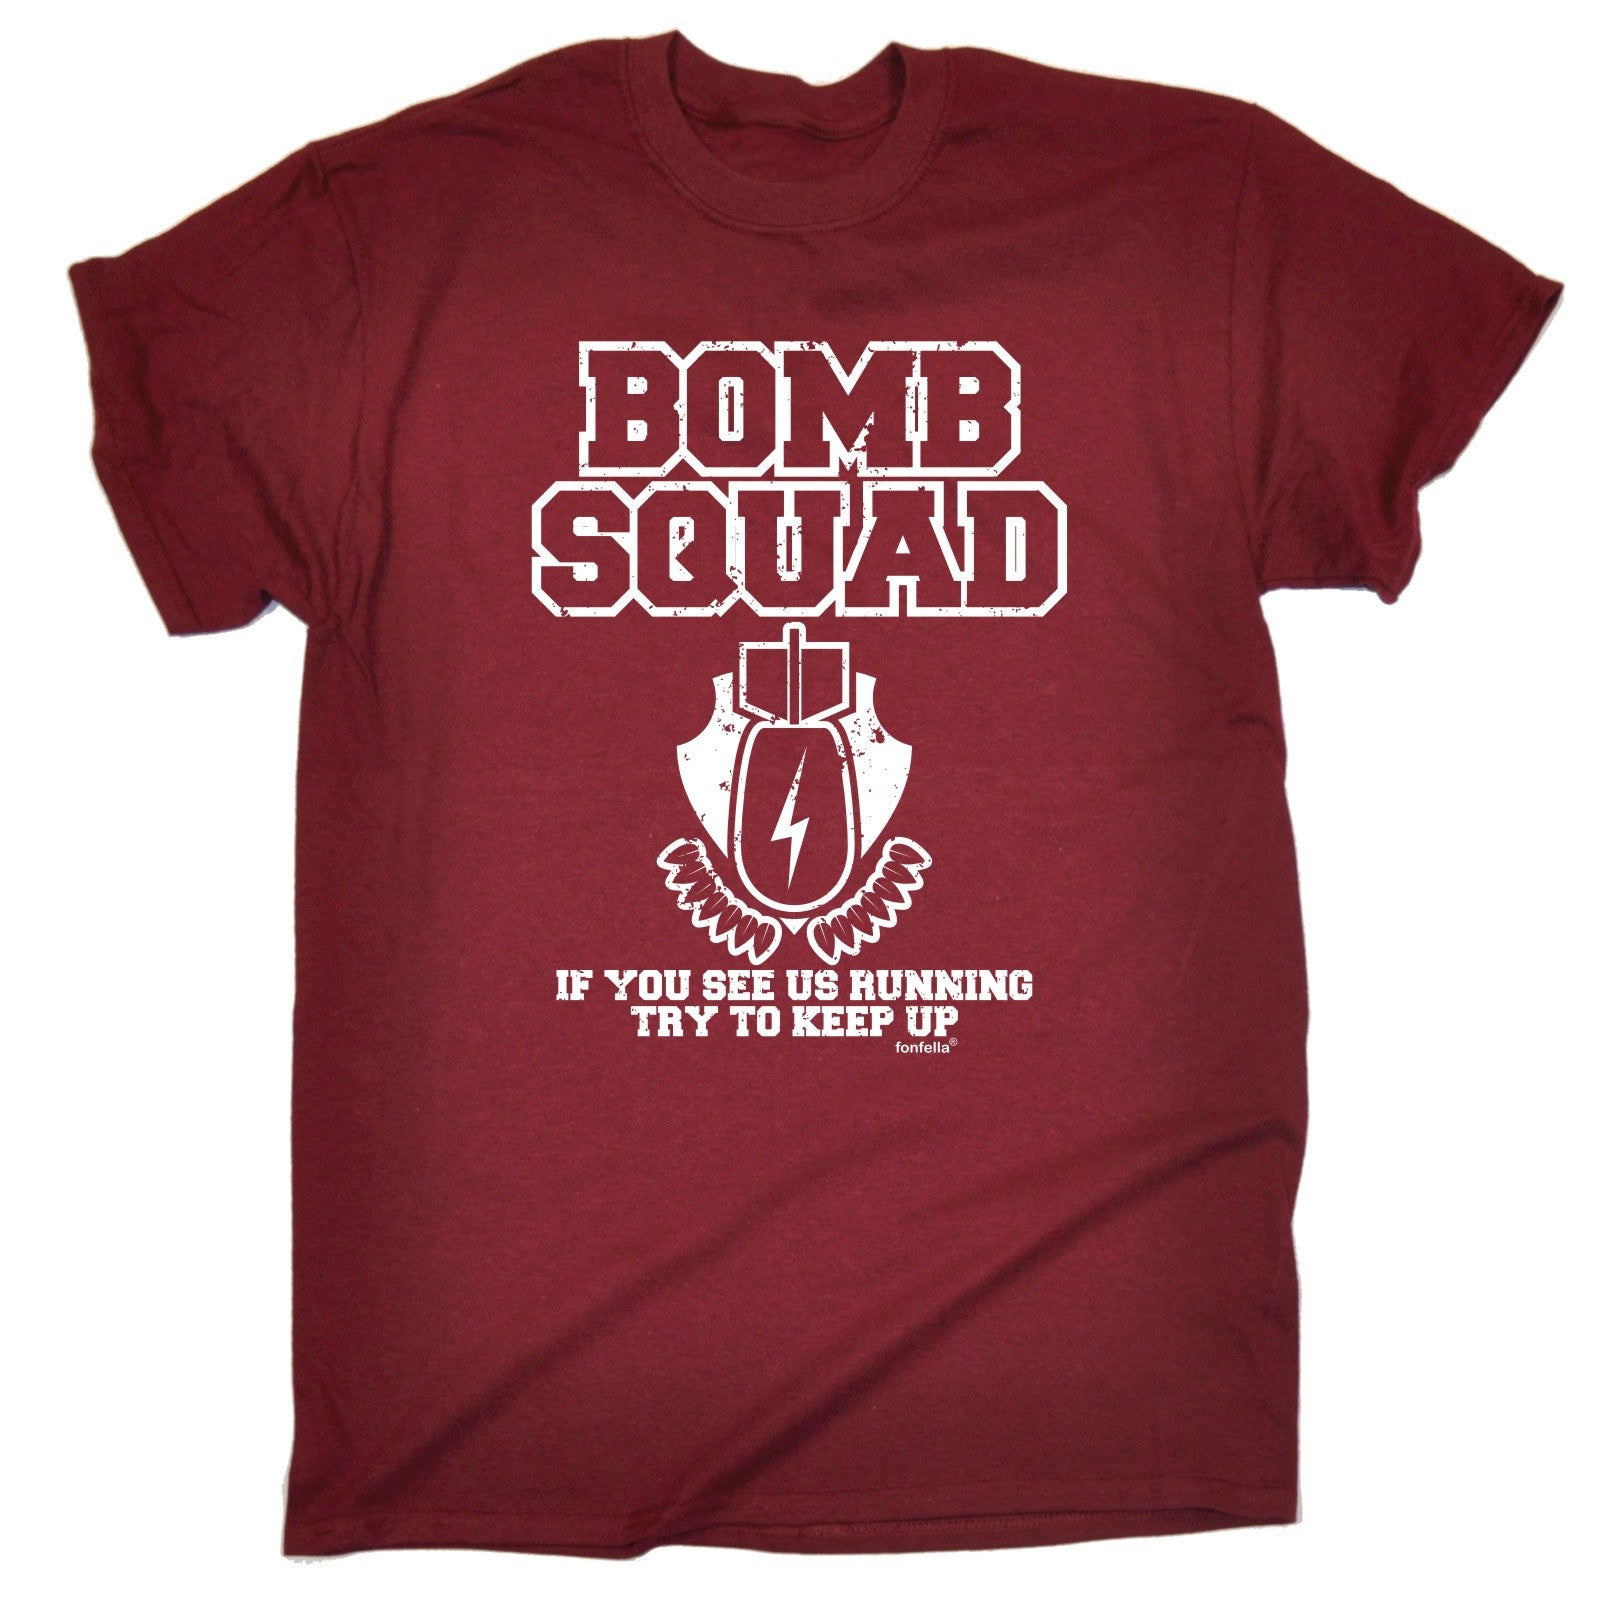 Details About BOMB SQUAD RUNNING TRY TO KEEP UP T SHIRT Tee Funny Birthday Gift Present Him